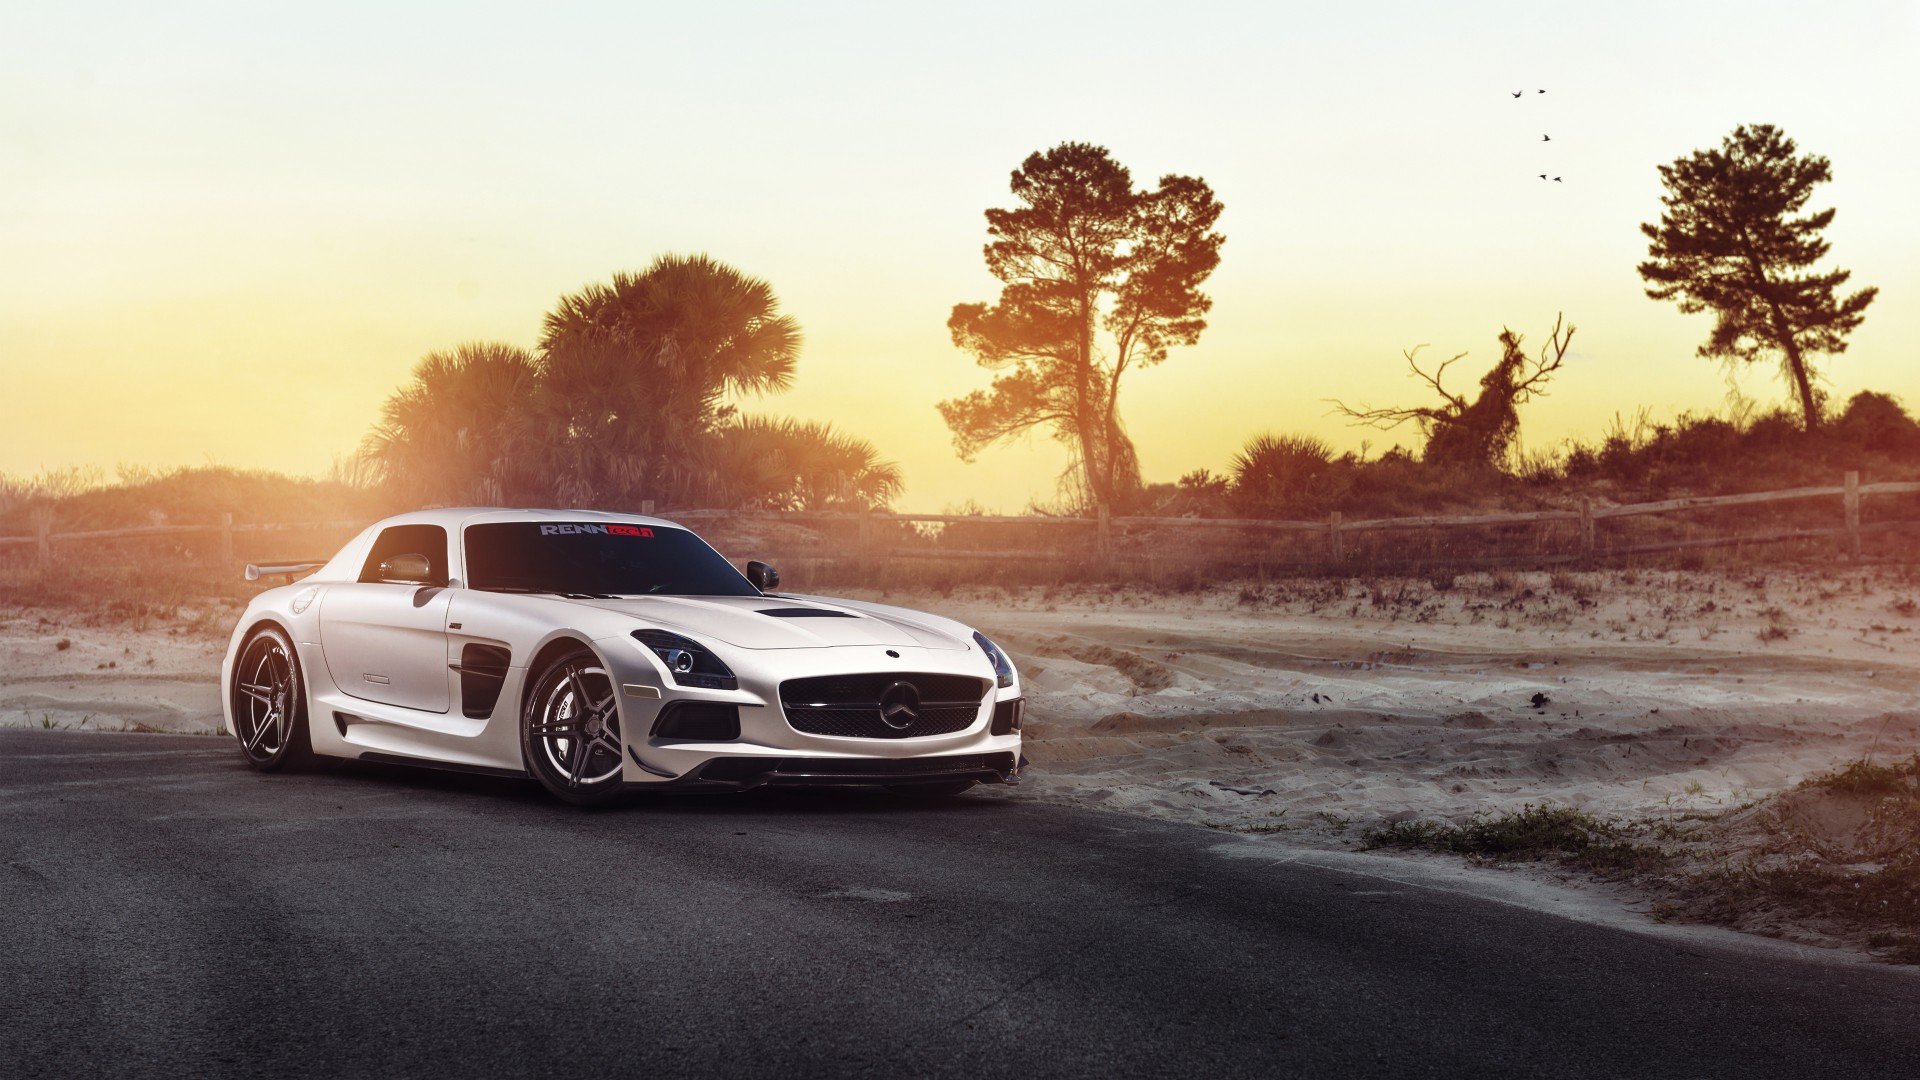 High Resolution Muscle Car Wallpapers Adv1 Renntech Mercedes Sls Black Series Wallpaper Hd Car